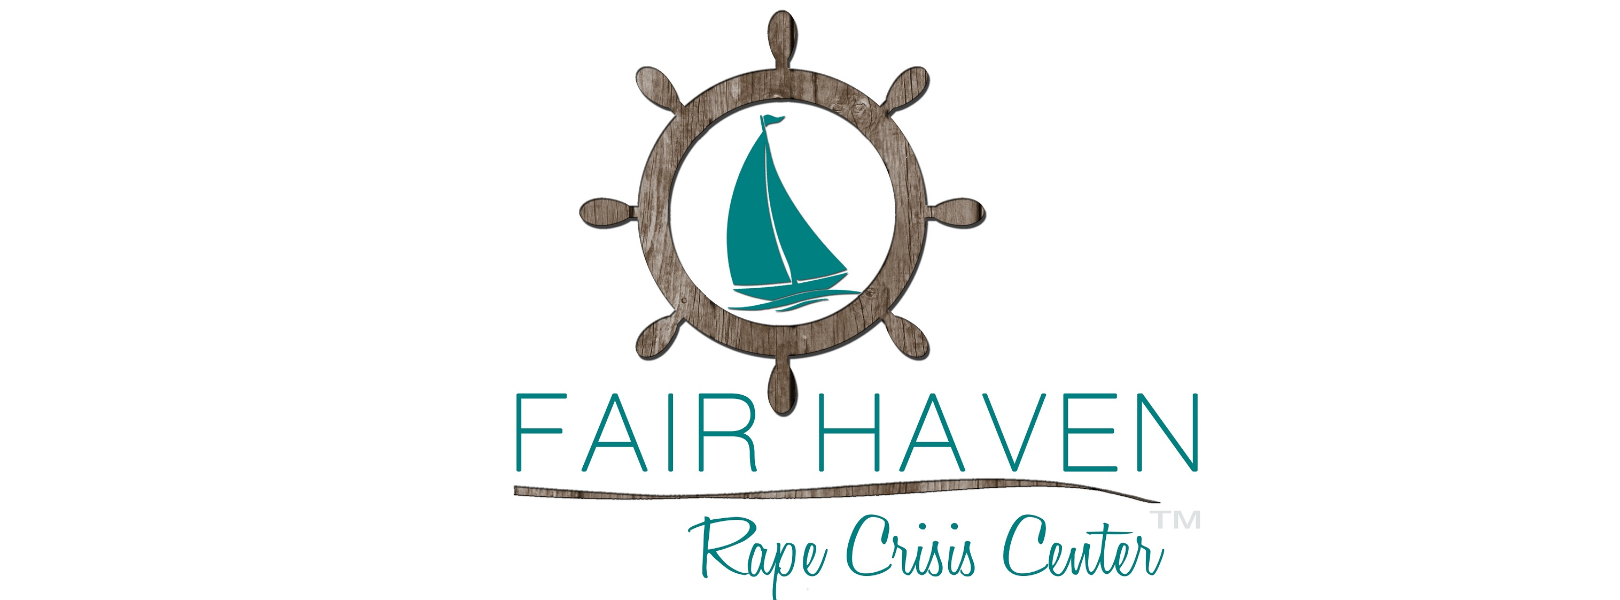 Fair Haven Rape Crisis Center